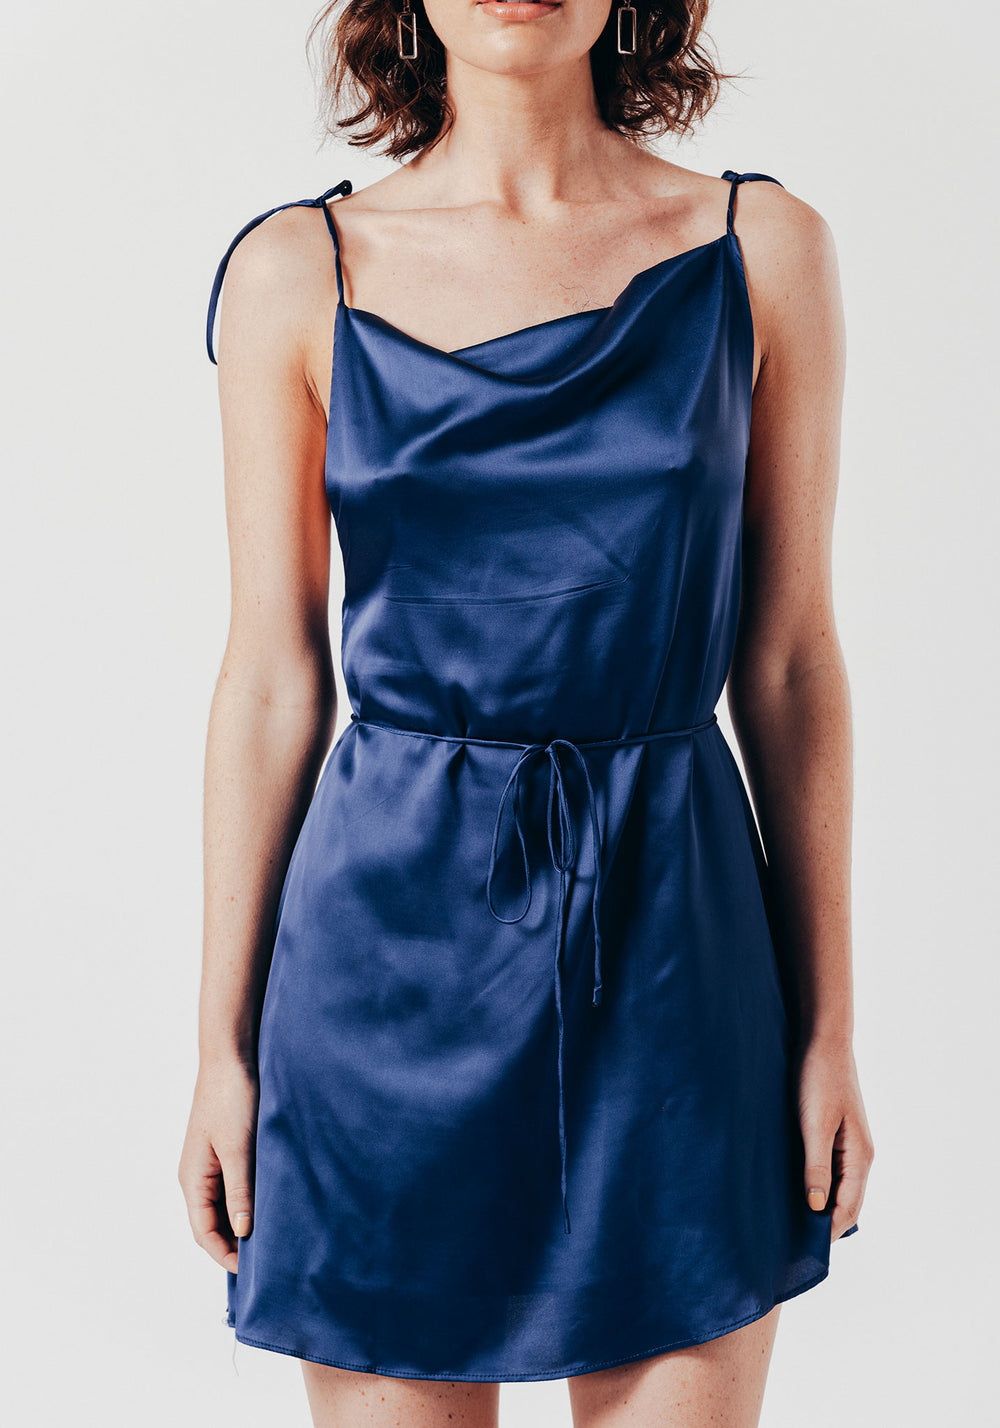 Navy Satin Mini Dress